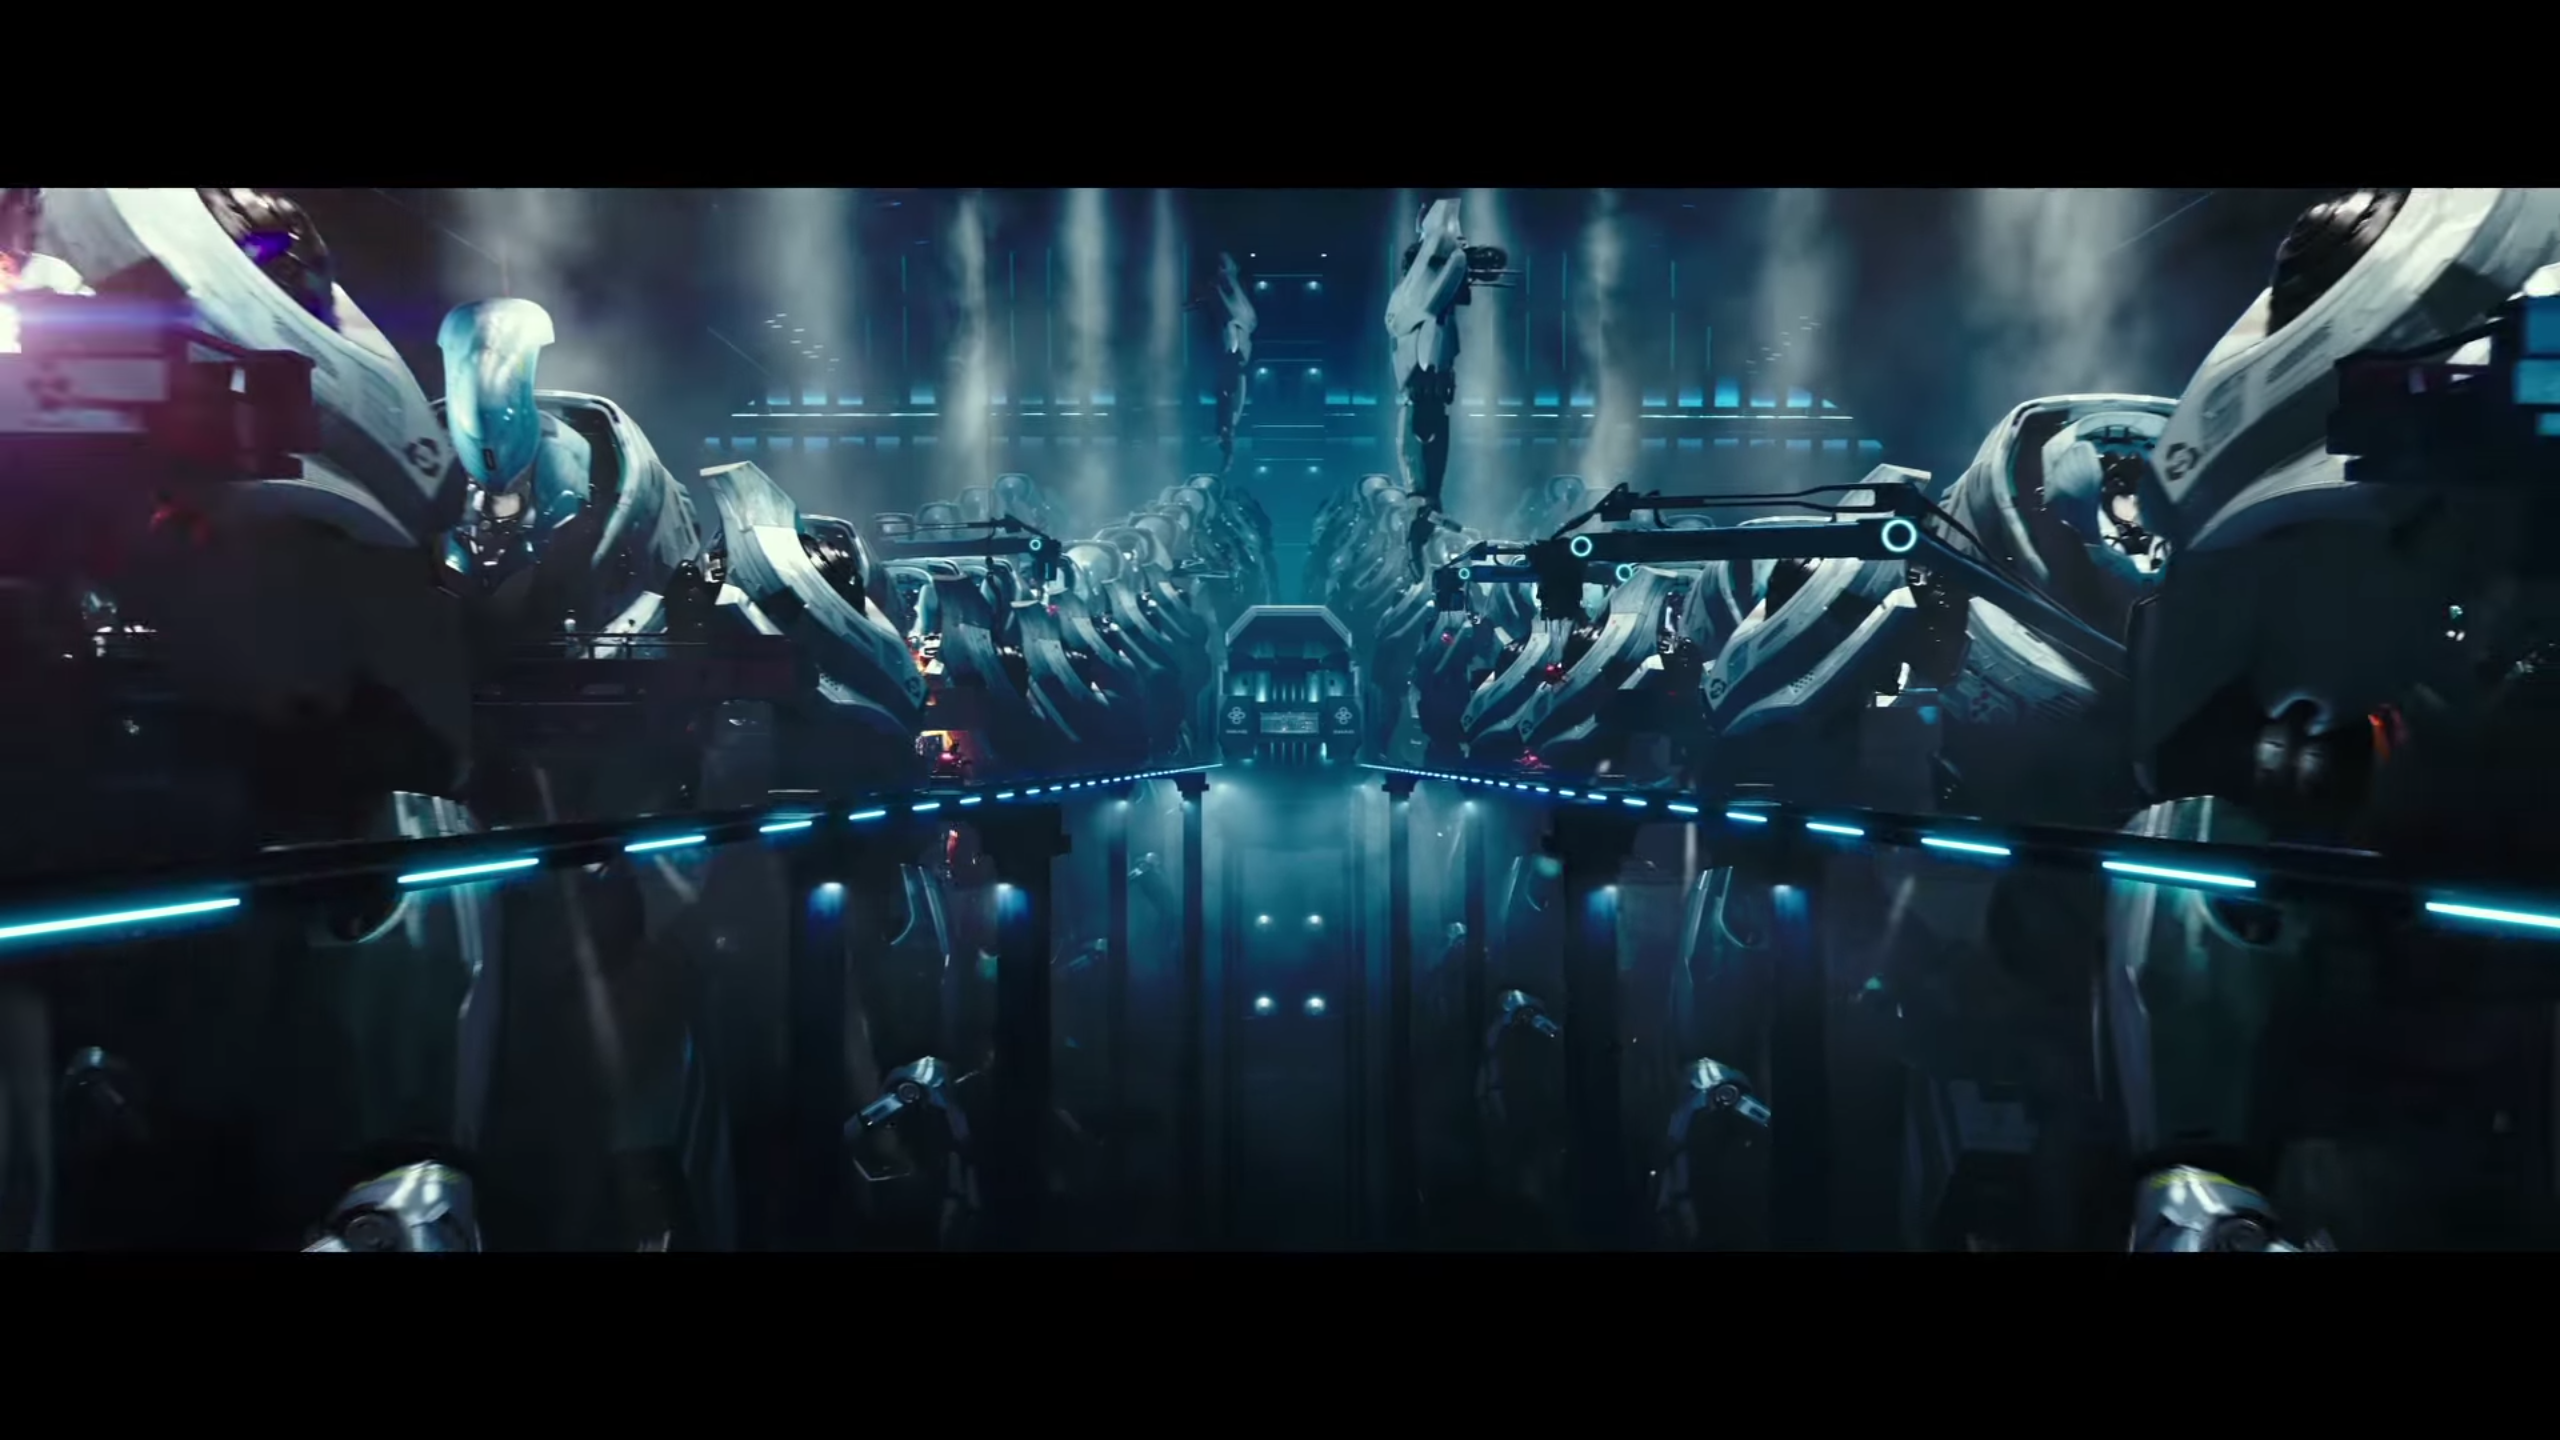 Drone Jaegers